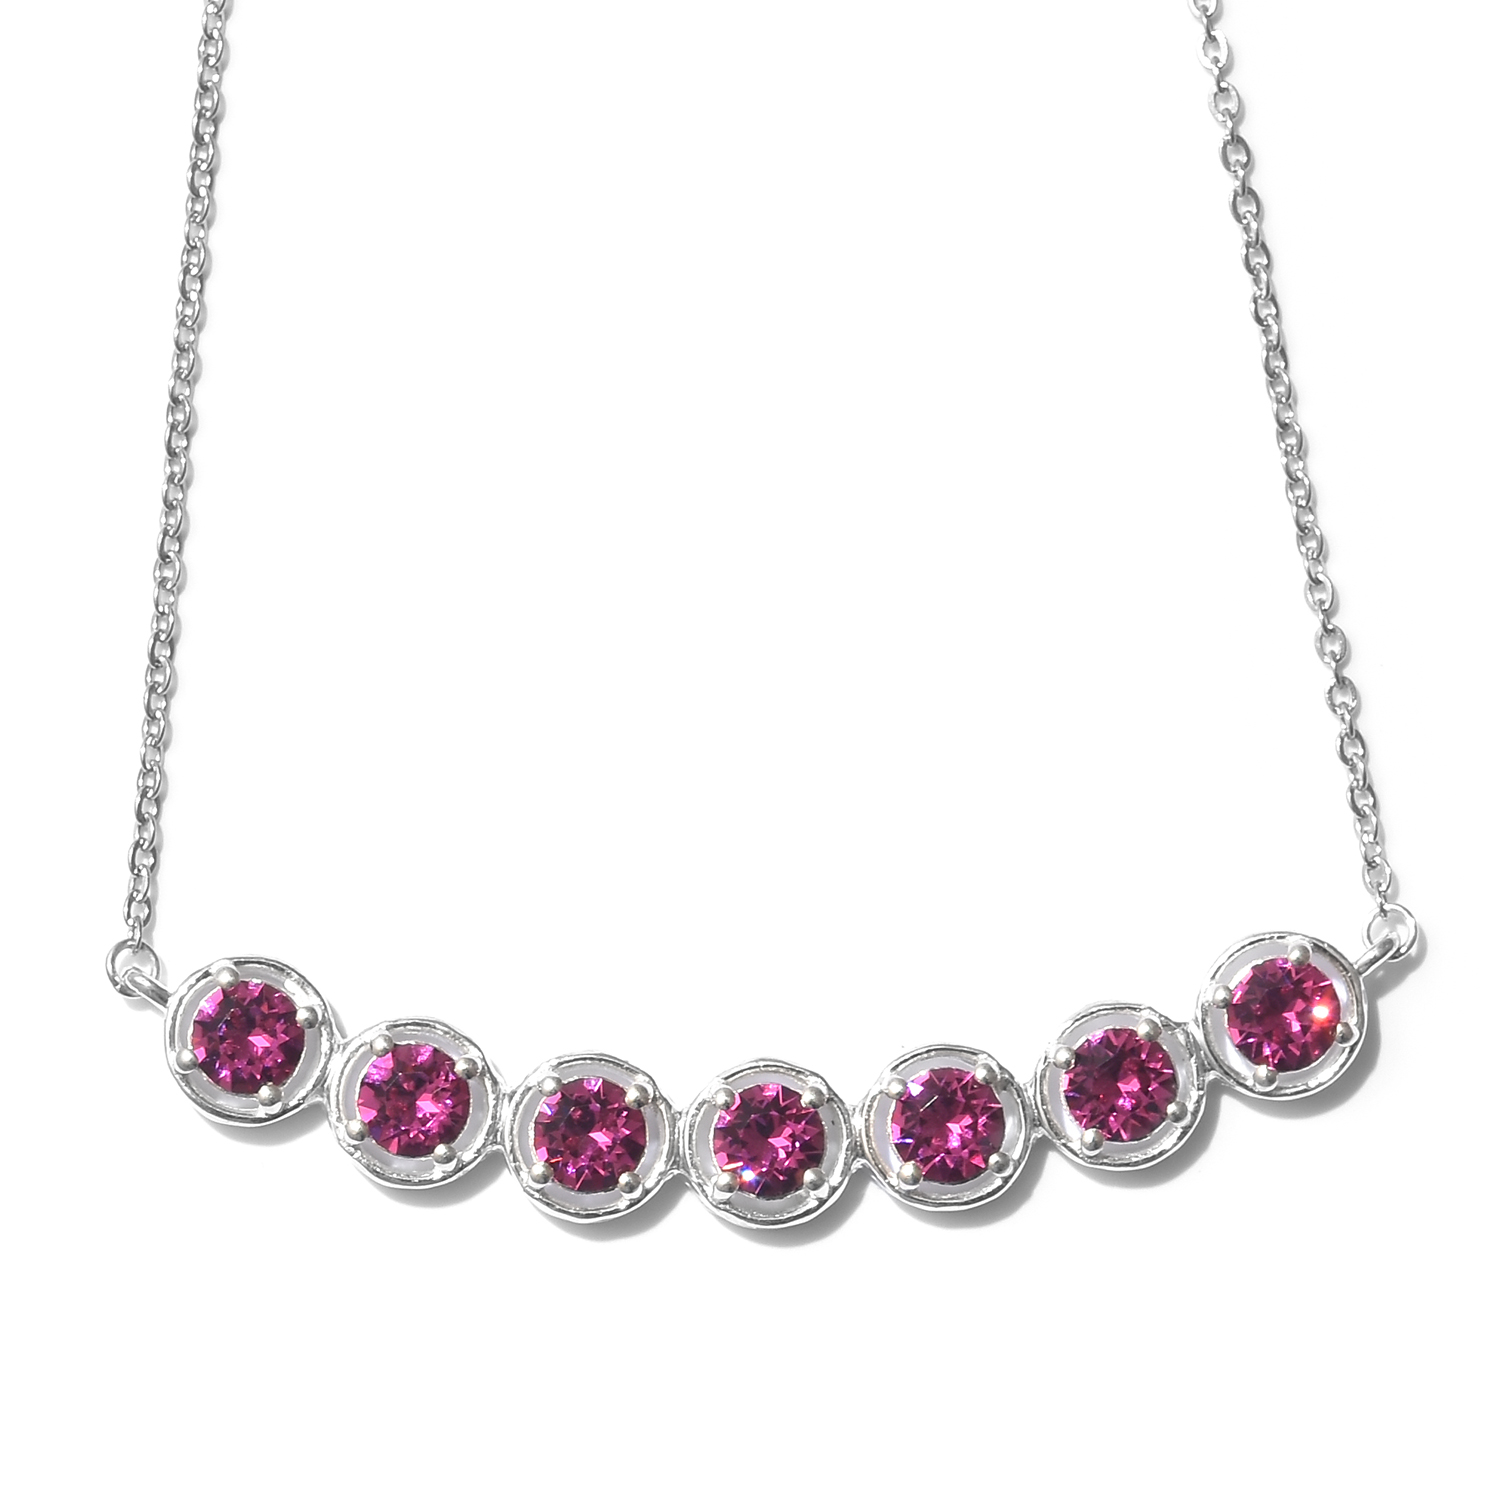 531b83183 Sterling Silver Necklace (18-20 in) Made with SWAROVSKI Fuchsia Crystal |  Shop LC